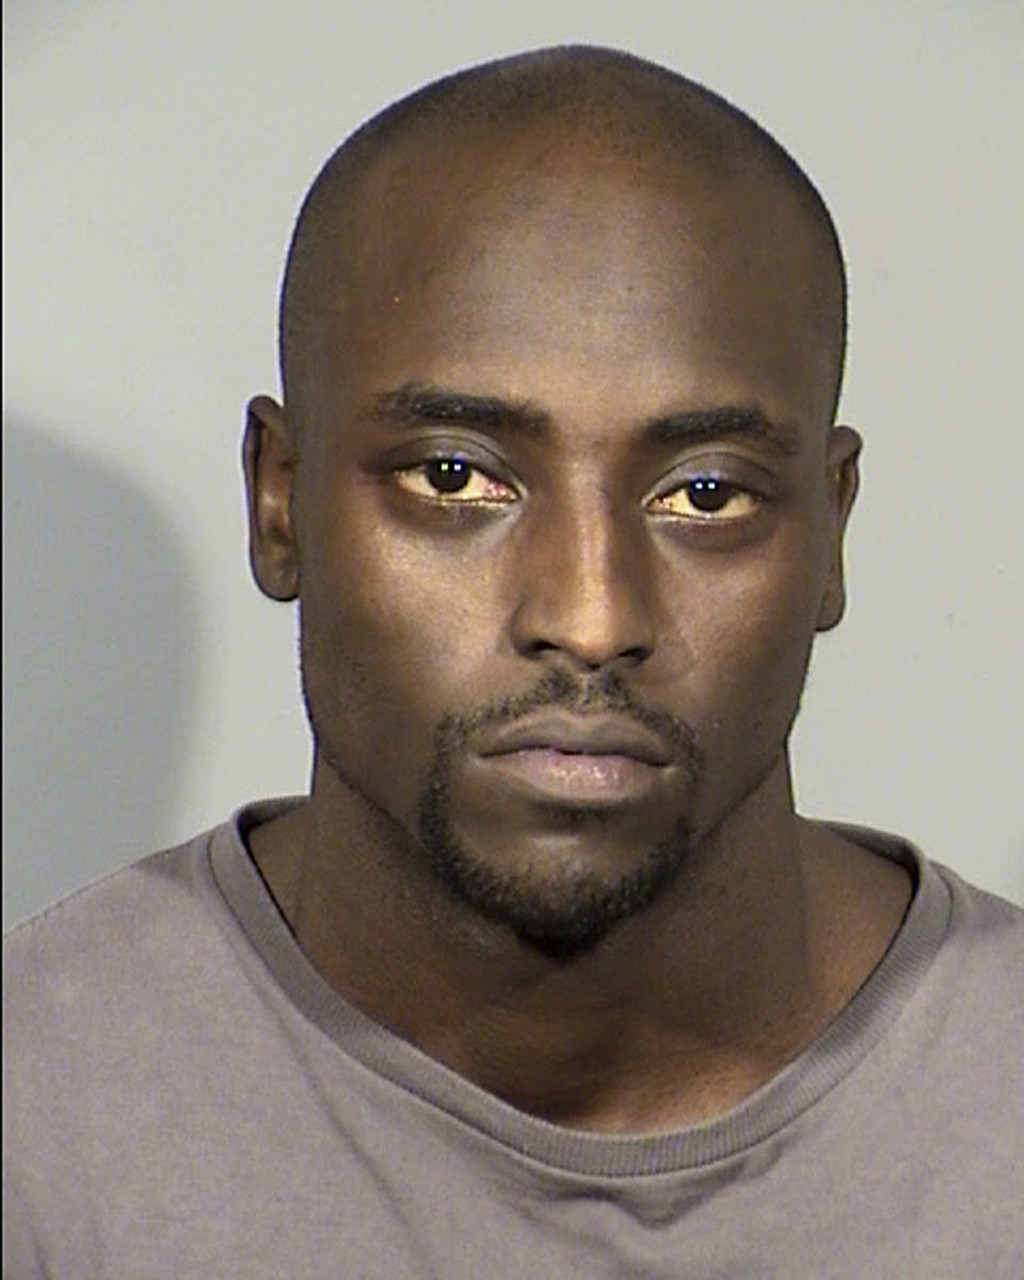 This undated Clark County Detention Center photo released by the Las Vegas Metropolitan Police Department shows Cierre Wood. Wood, a former NFL player